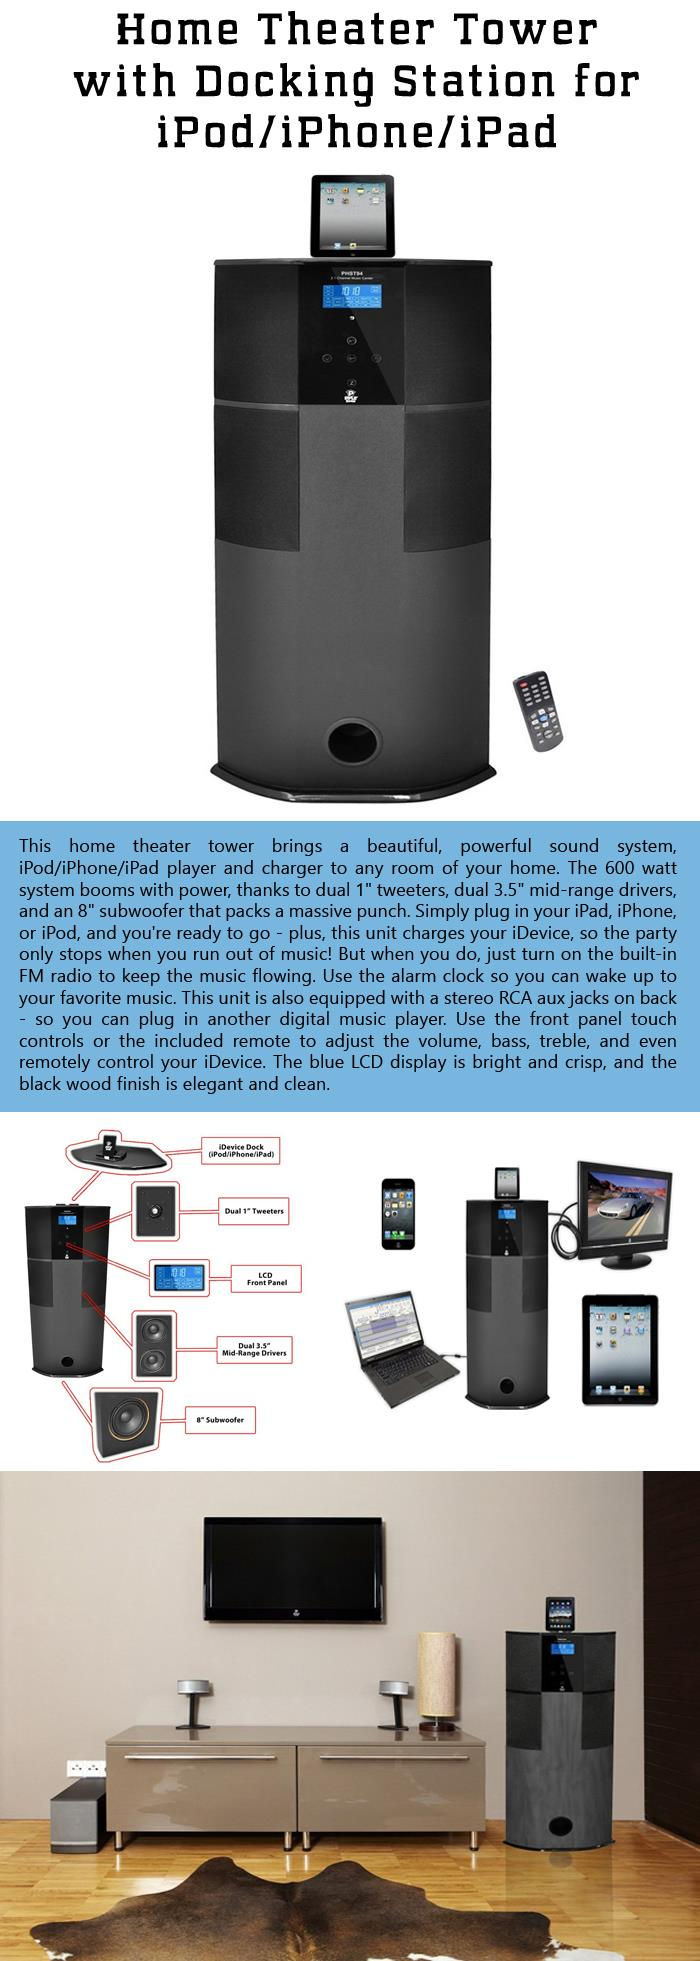 Home Theater Tower with Docking Station